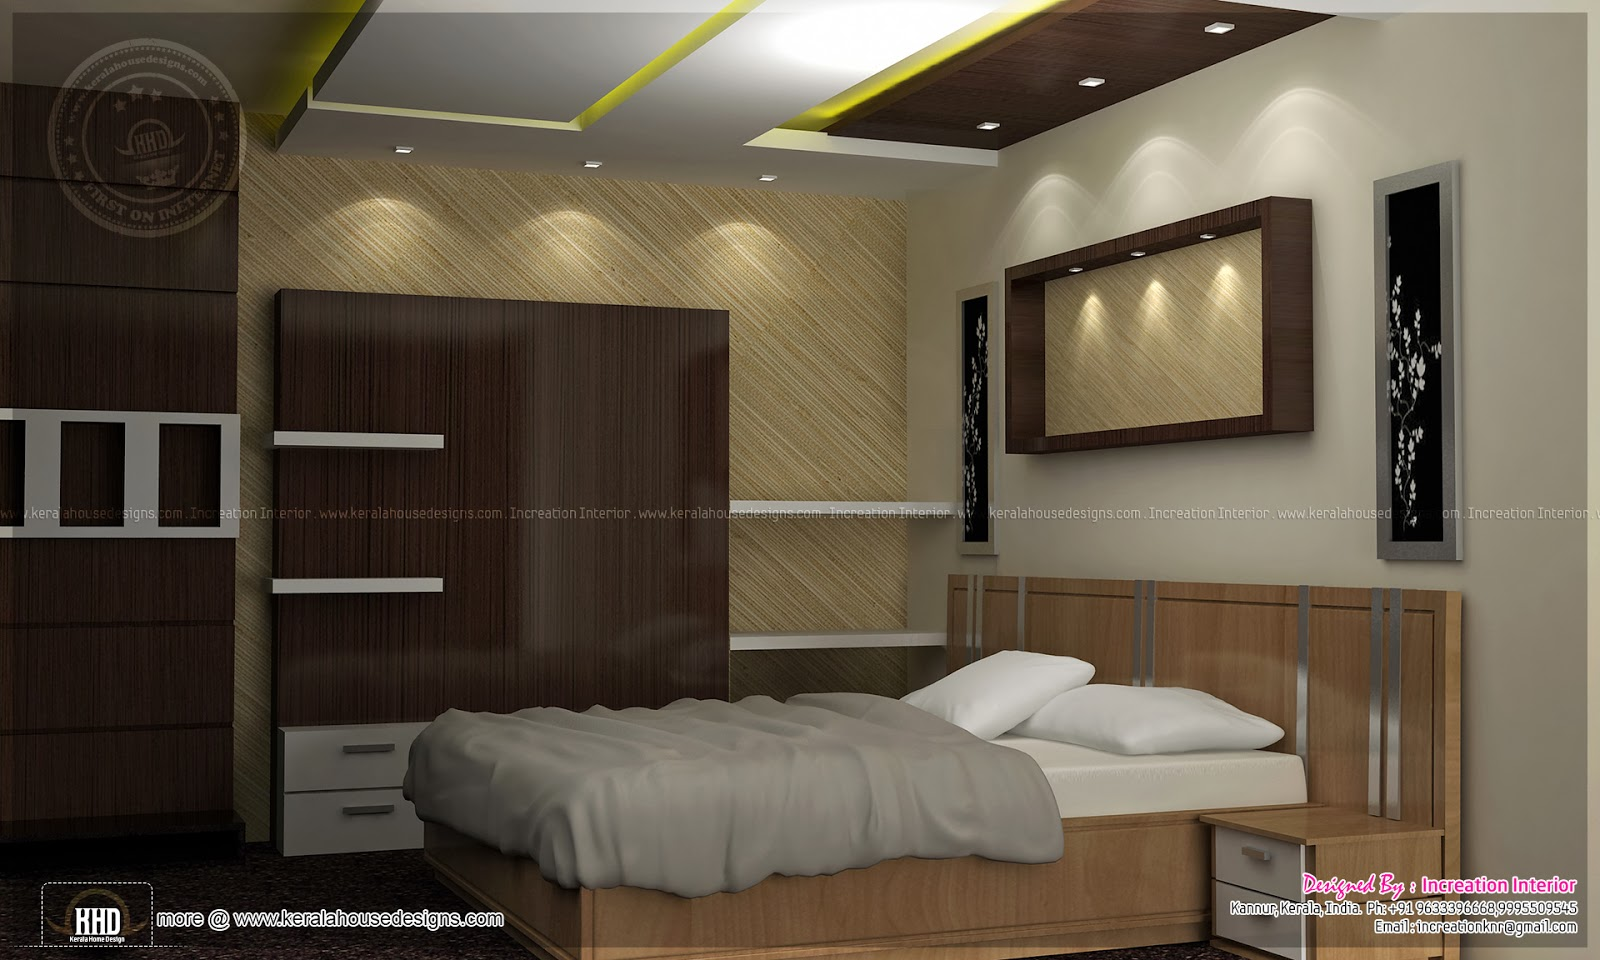 Bedroom interior designs | Home Kerala Plans